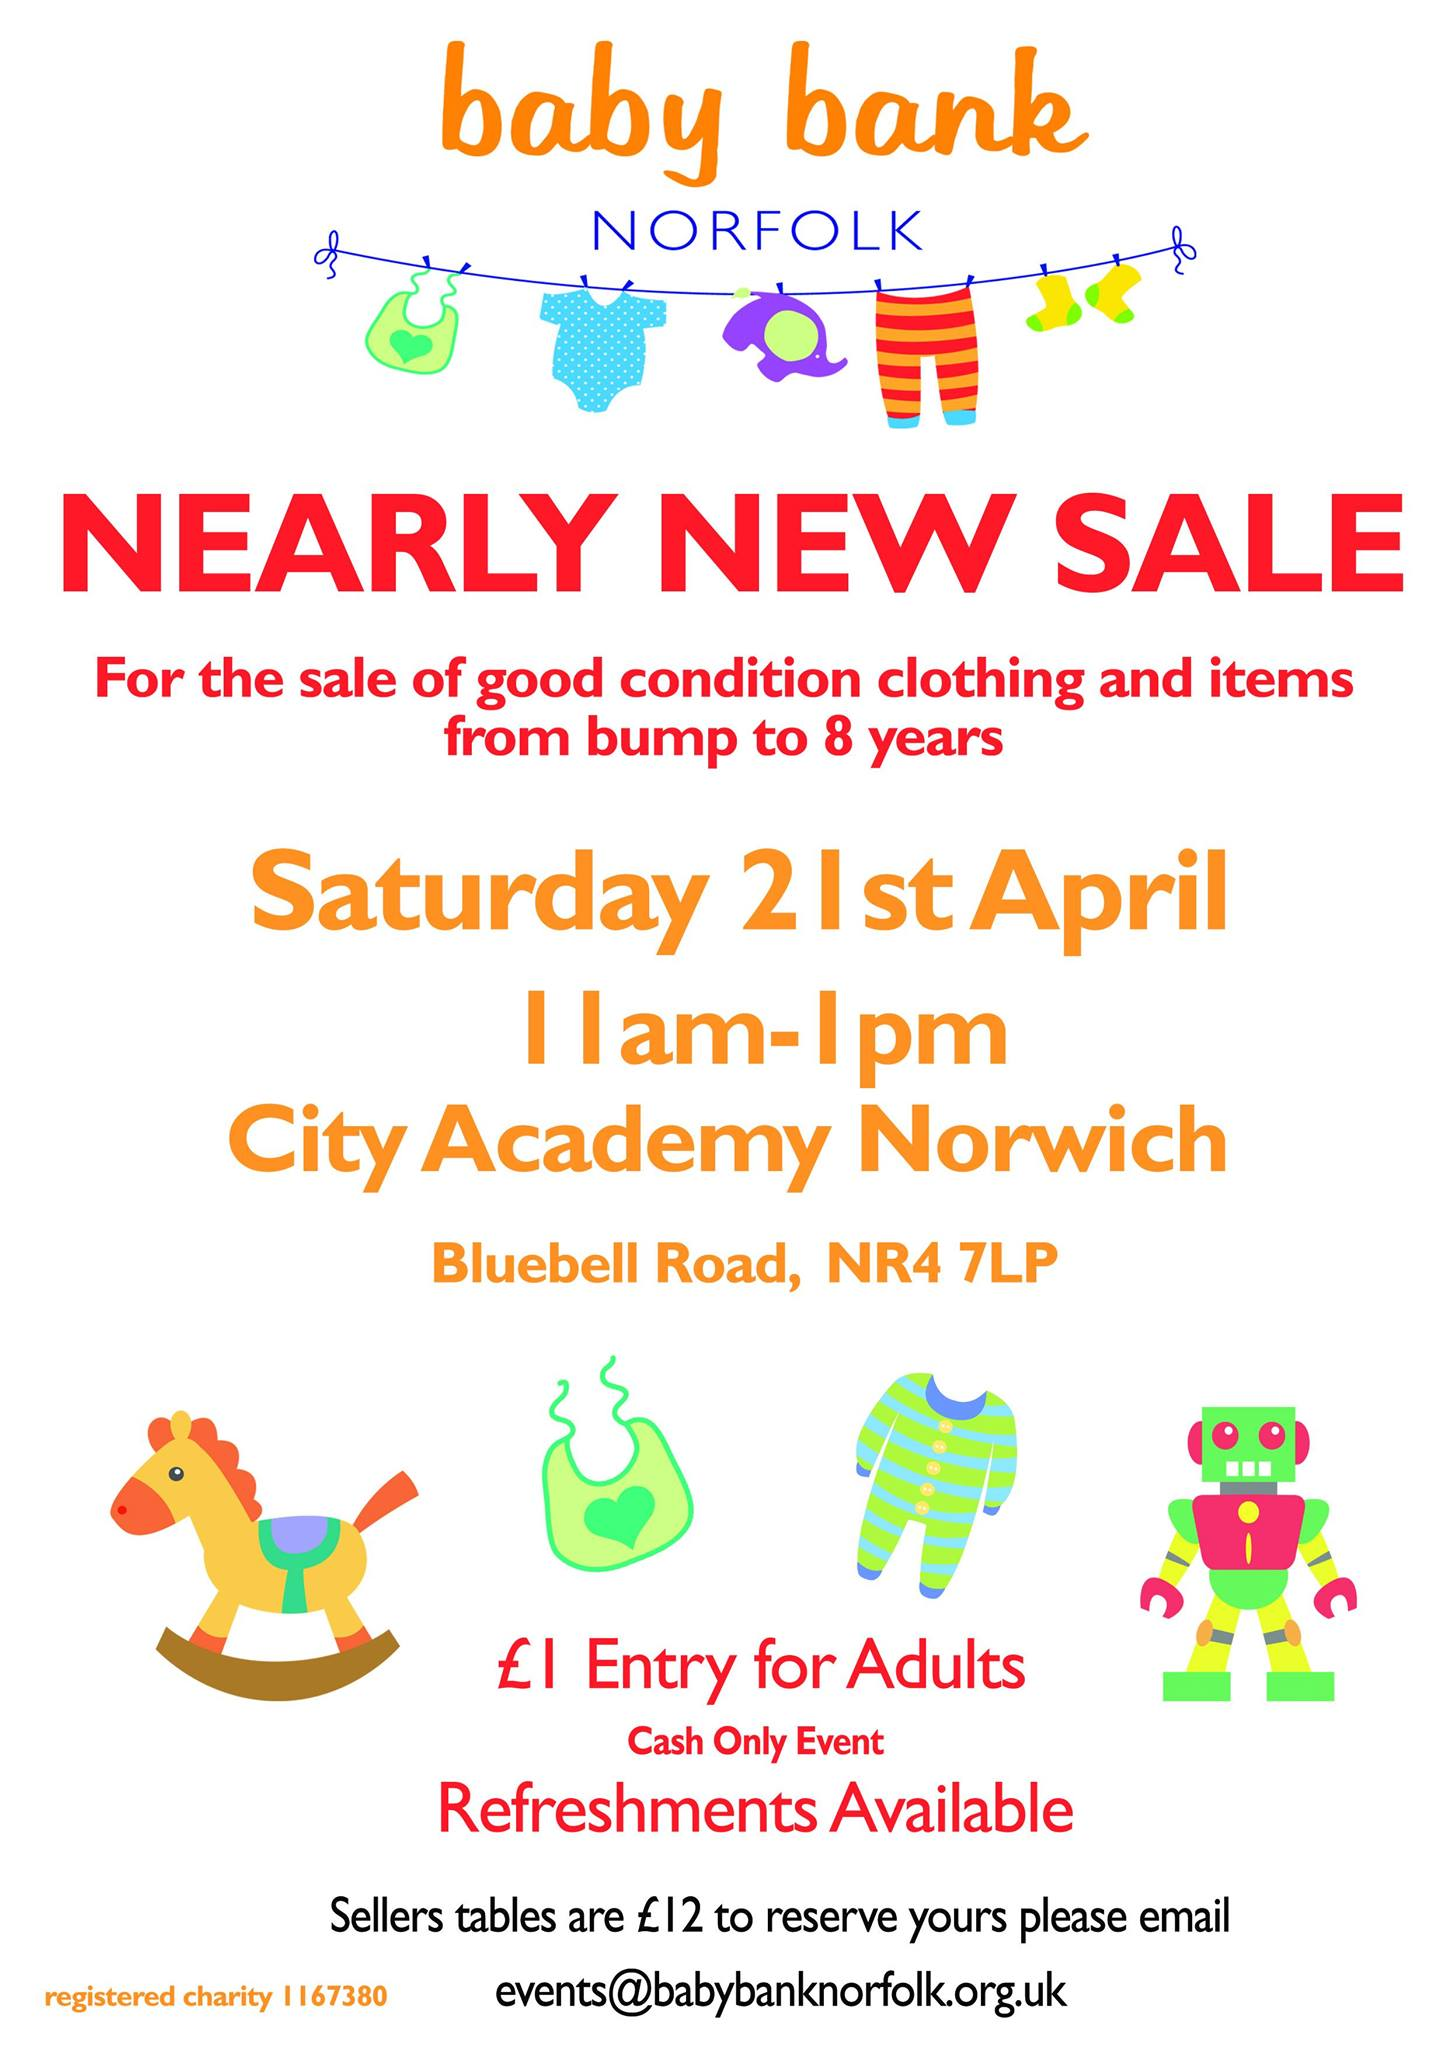 We're having a spring nearly new sale!